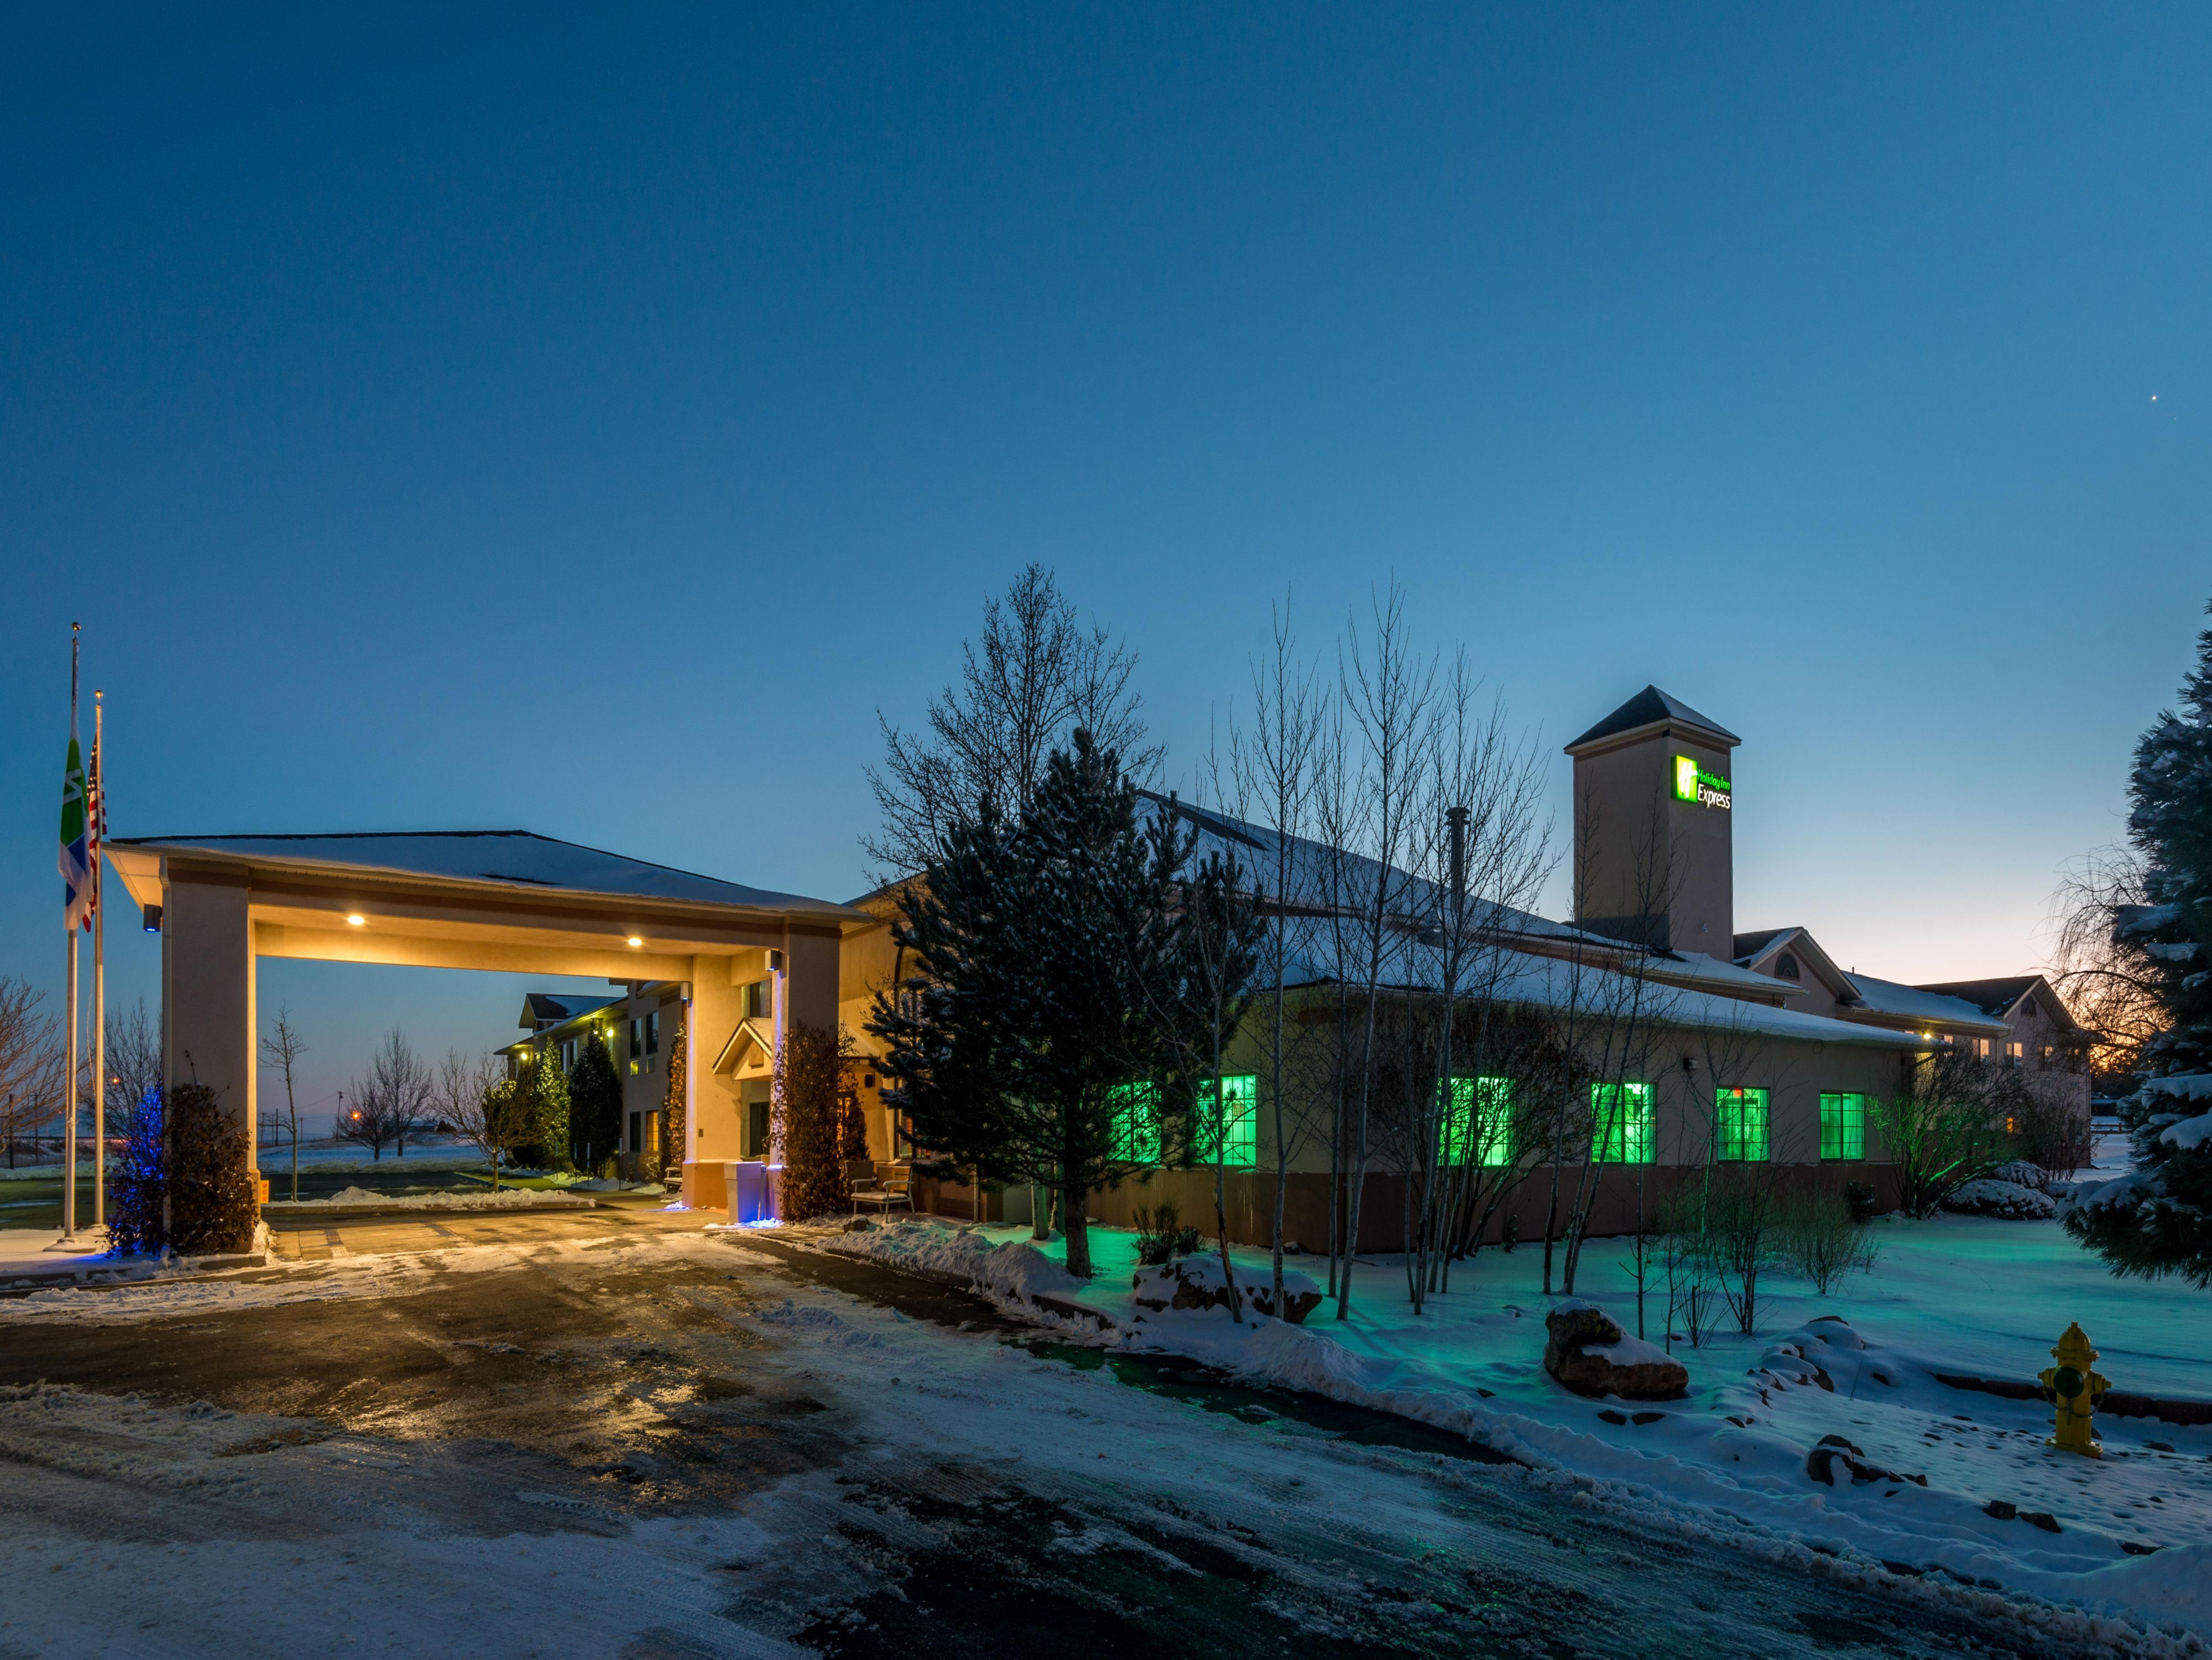 A winter night at our Raton New Mexico hotel